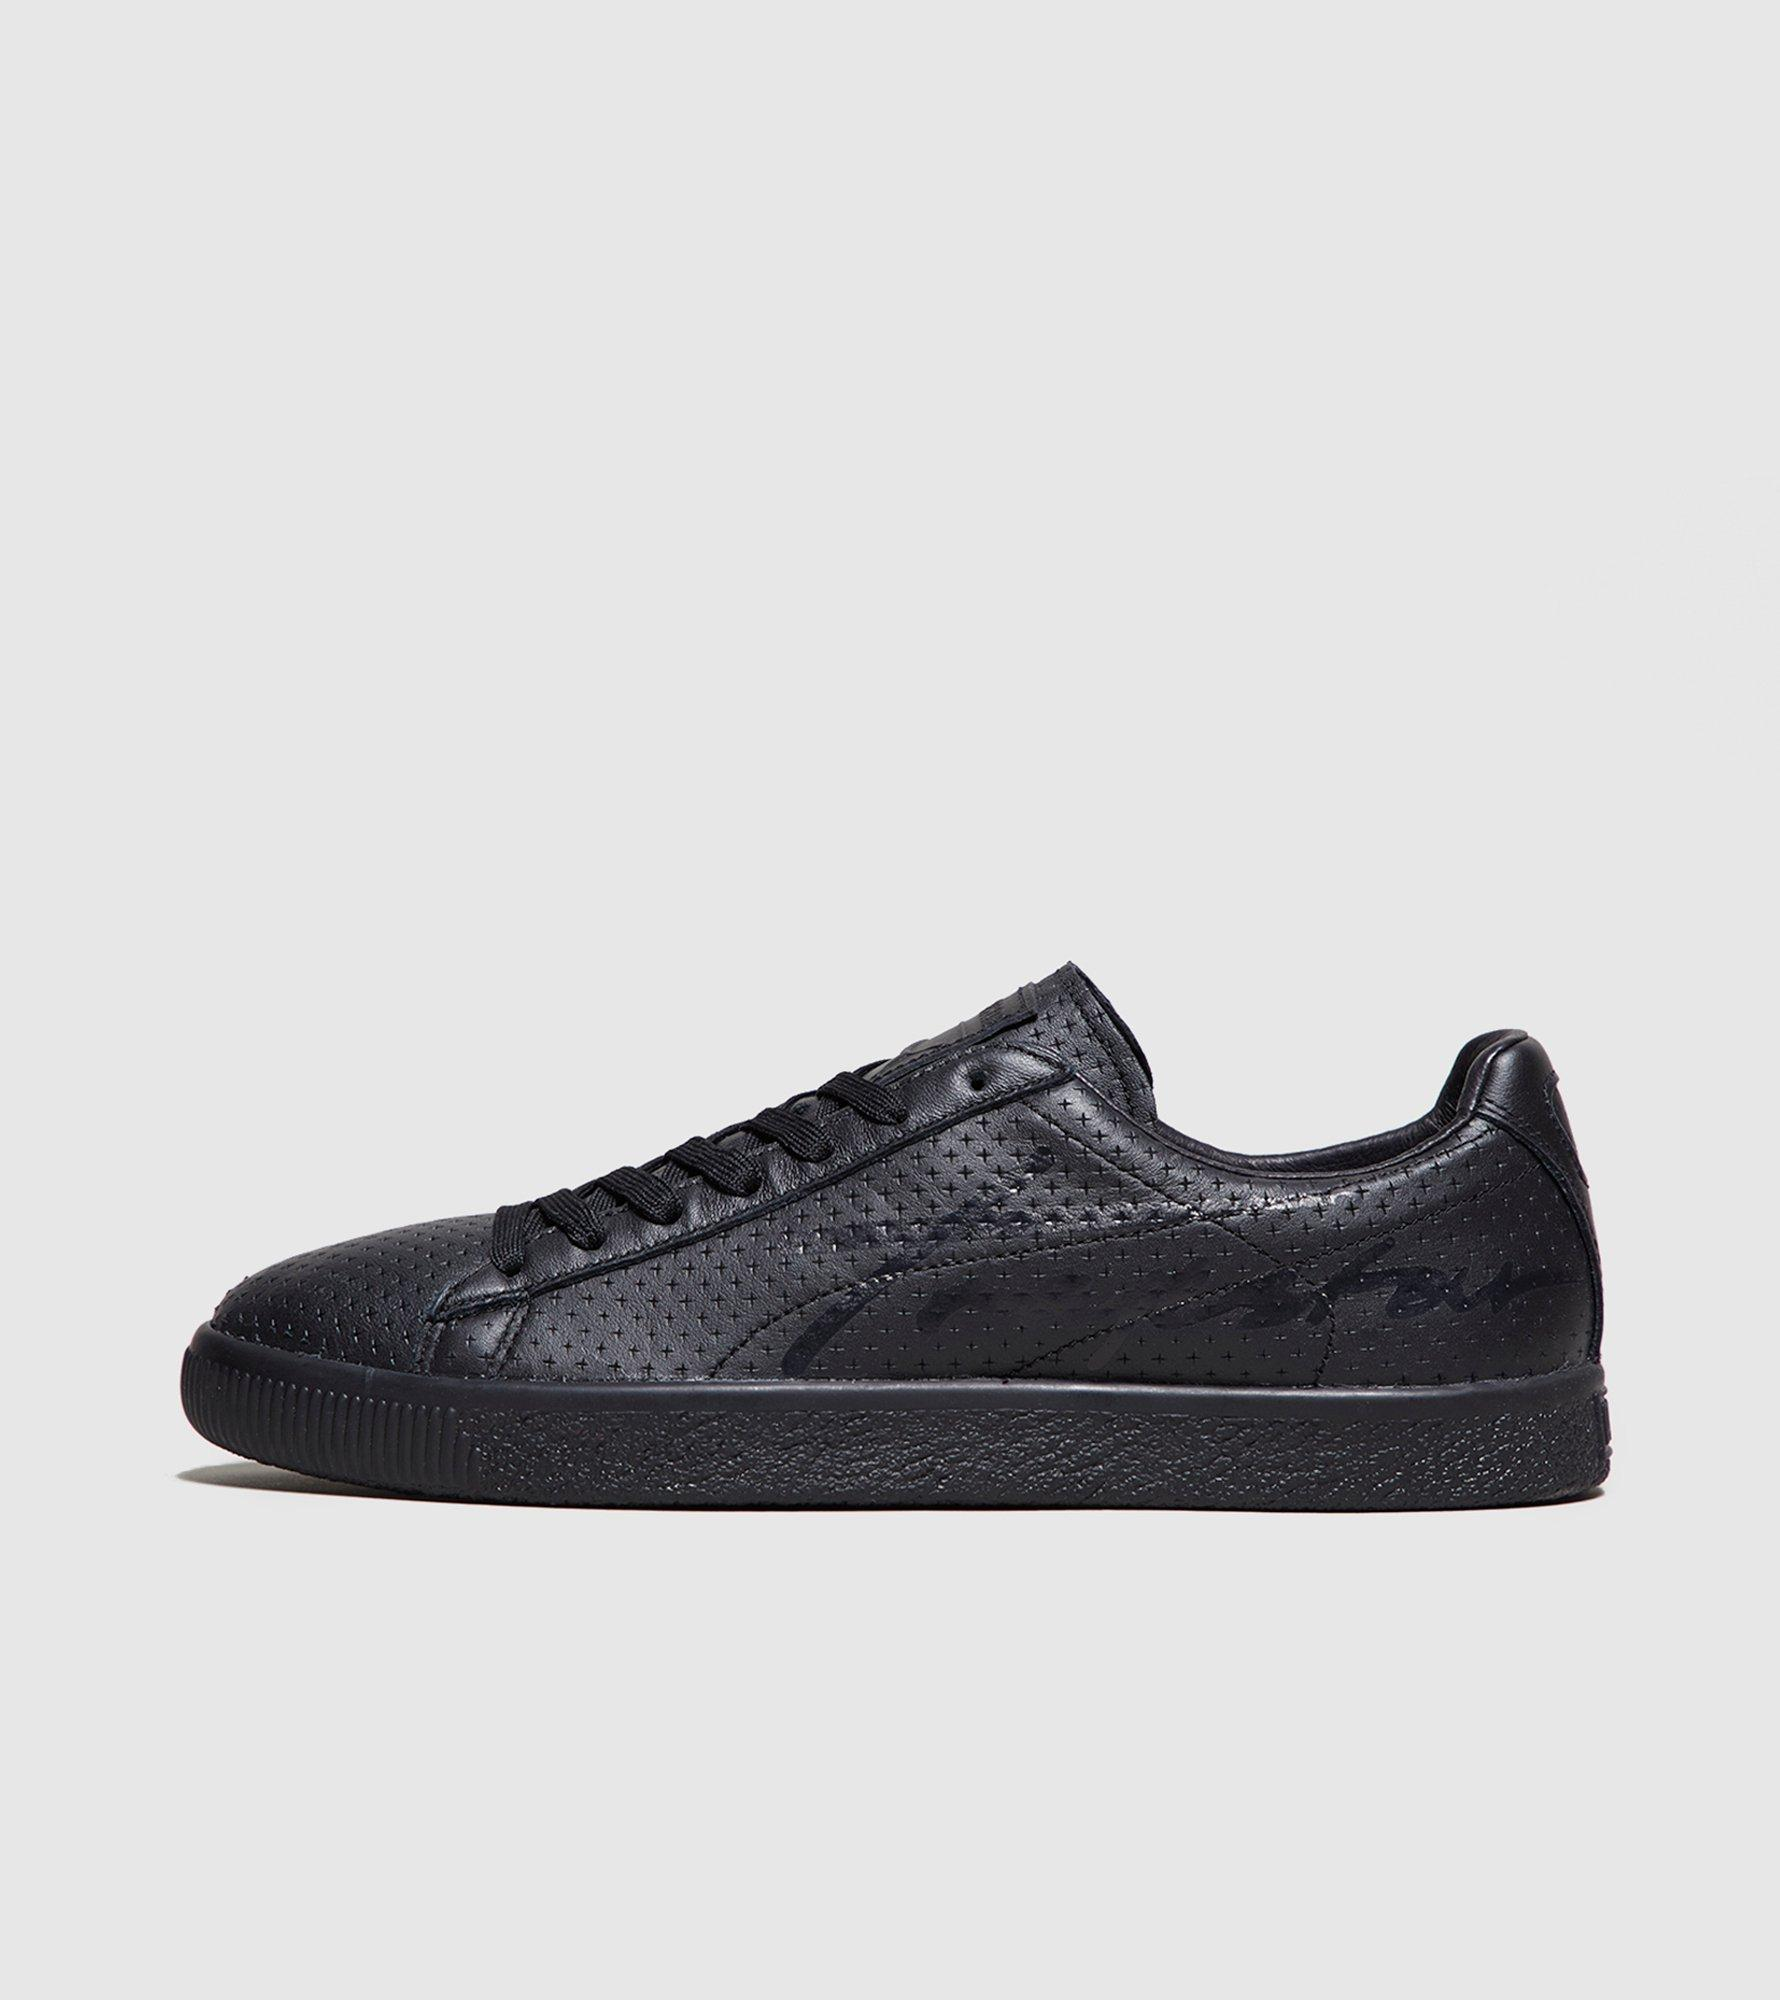 18d3ba71445f94 Puma X Trapstar Clyde Perforated in Black for Men - Lyst